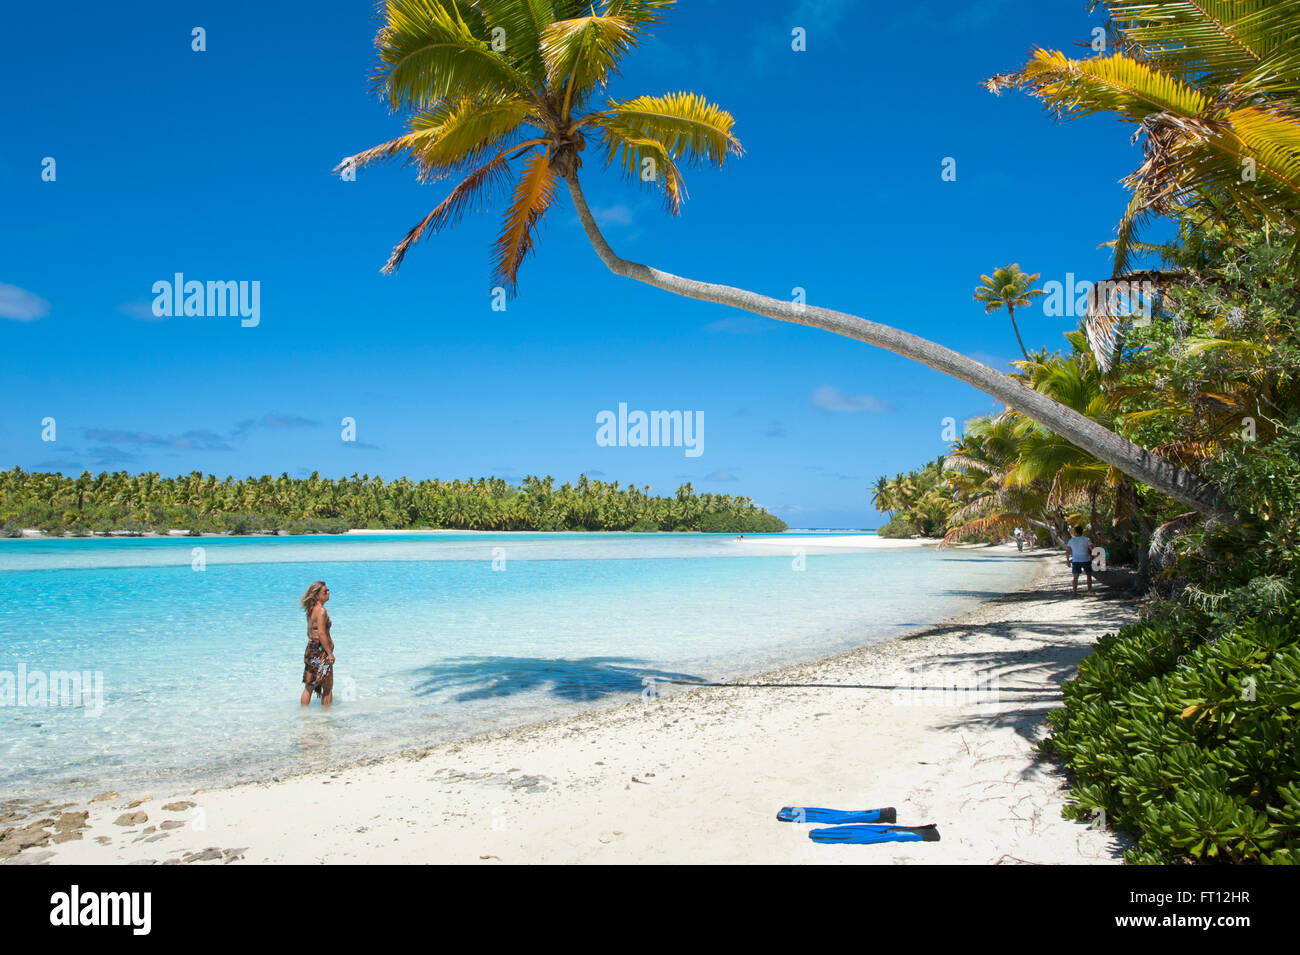 Woman strolling along the beach with palm trees at One Foot Island in Aitutaki Lagoon, Aitutaki, Cook Islands, South - Stock Image